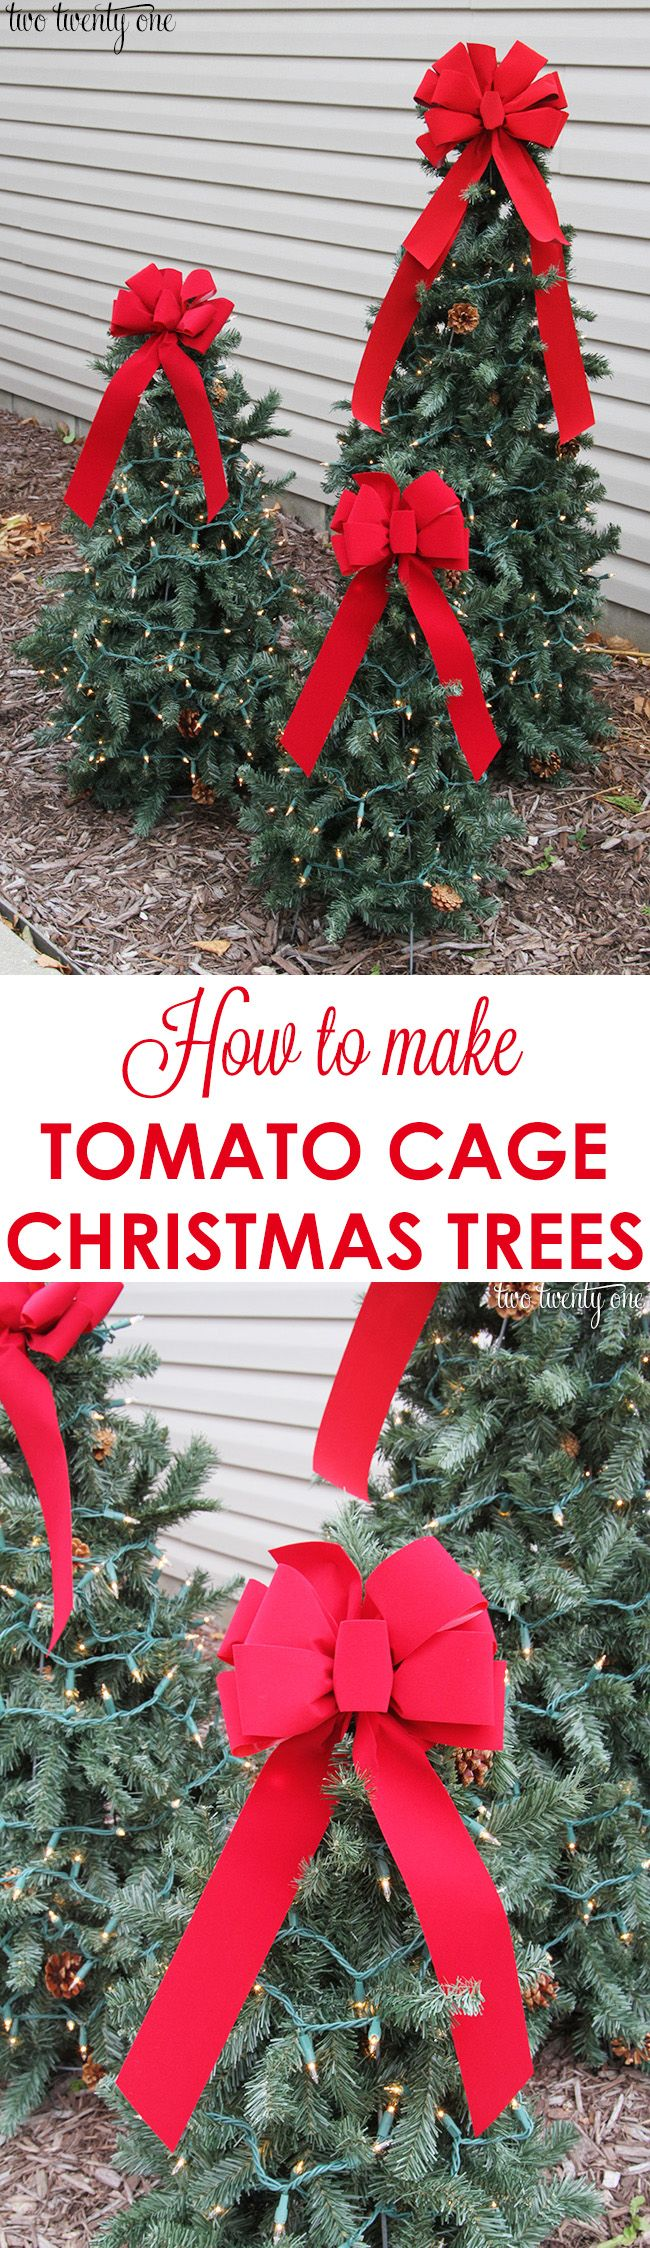 Tiered tomato cage christmas trees tomato cage christmas tree and how to make tomato cage christmas trees plus how to make three different sizes solutioingenieria Image collections